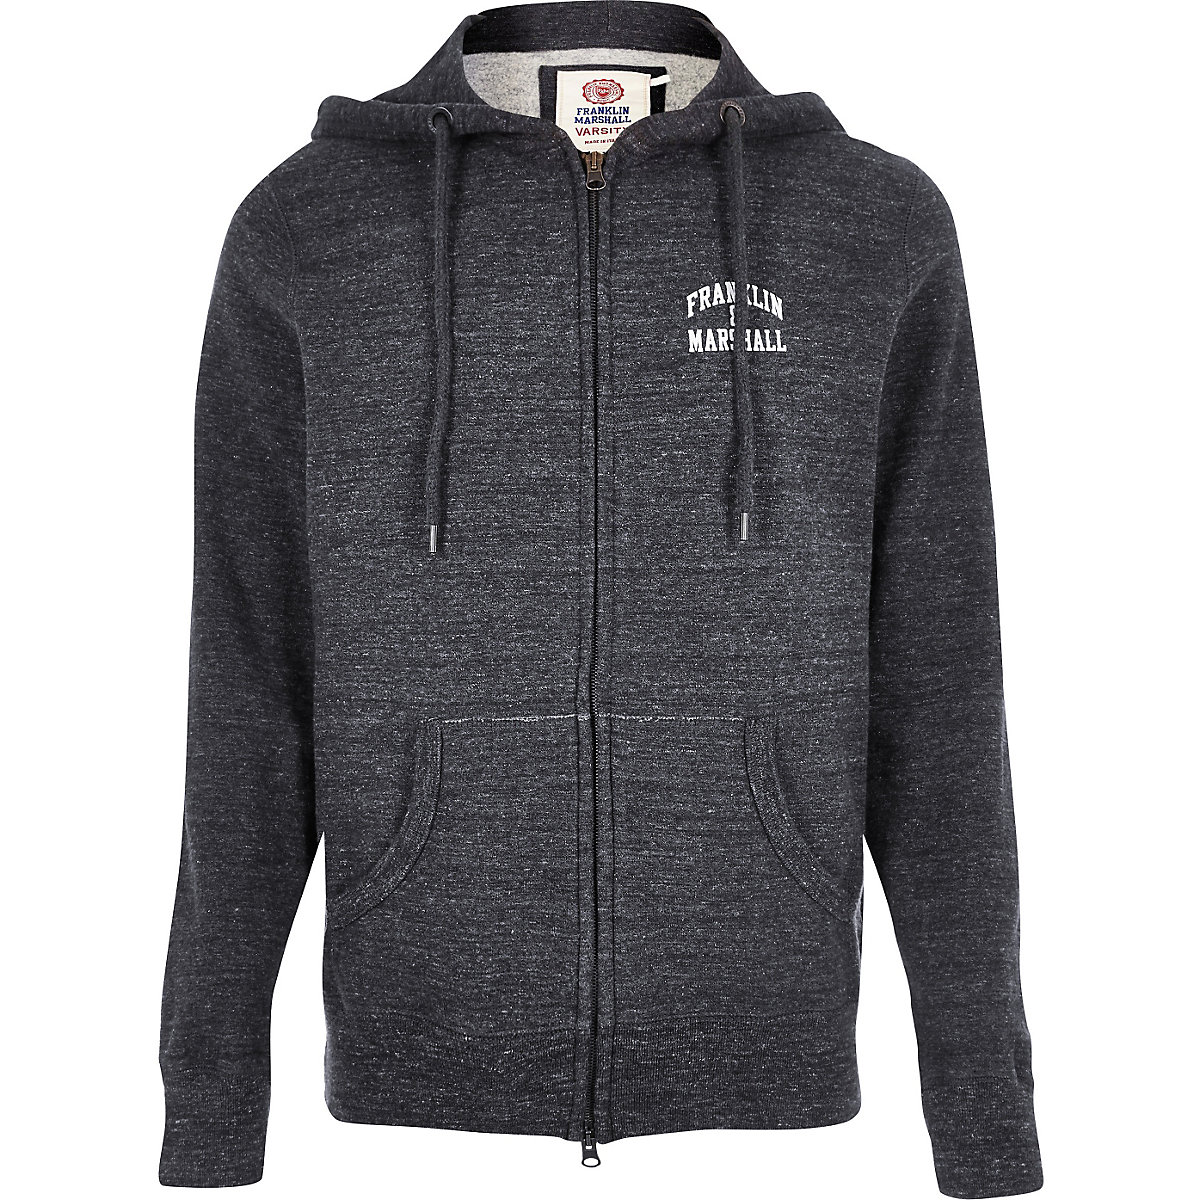 Grey fleece Franklin & Marshall zip up hoodie